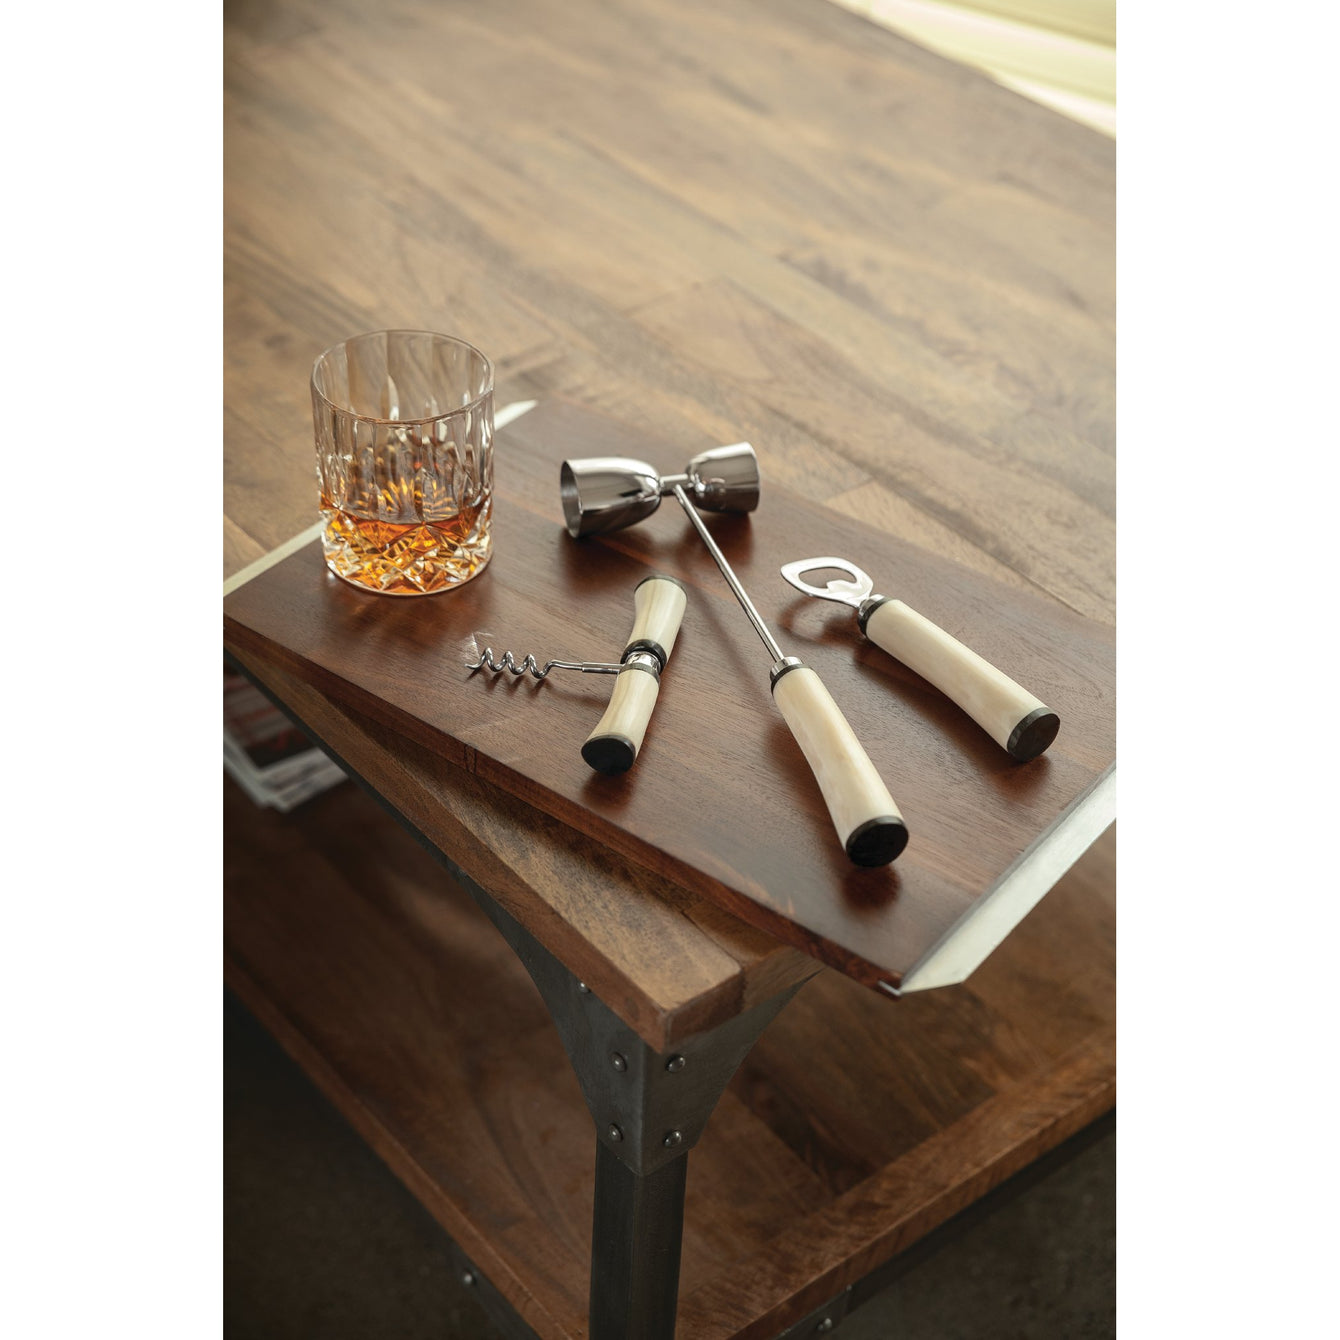 Admiral Three Piece Bone and Stainless Steel Bar Set-Home - Entertaining - Mixologist Tools-VISKI-Peccadilly